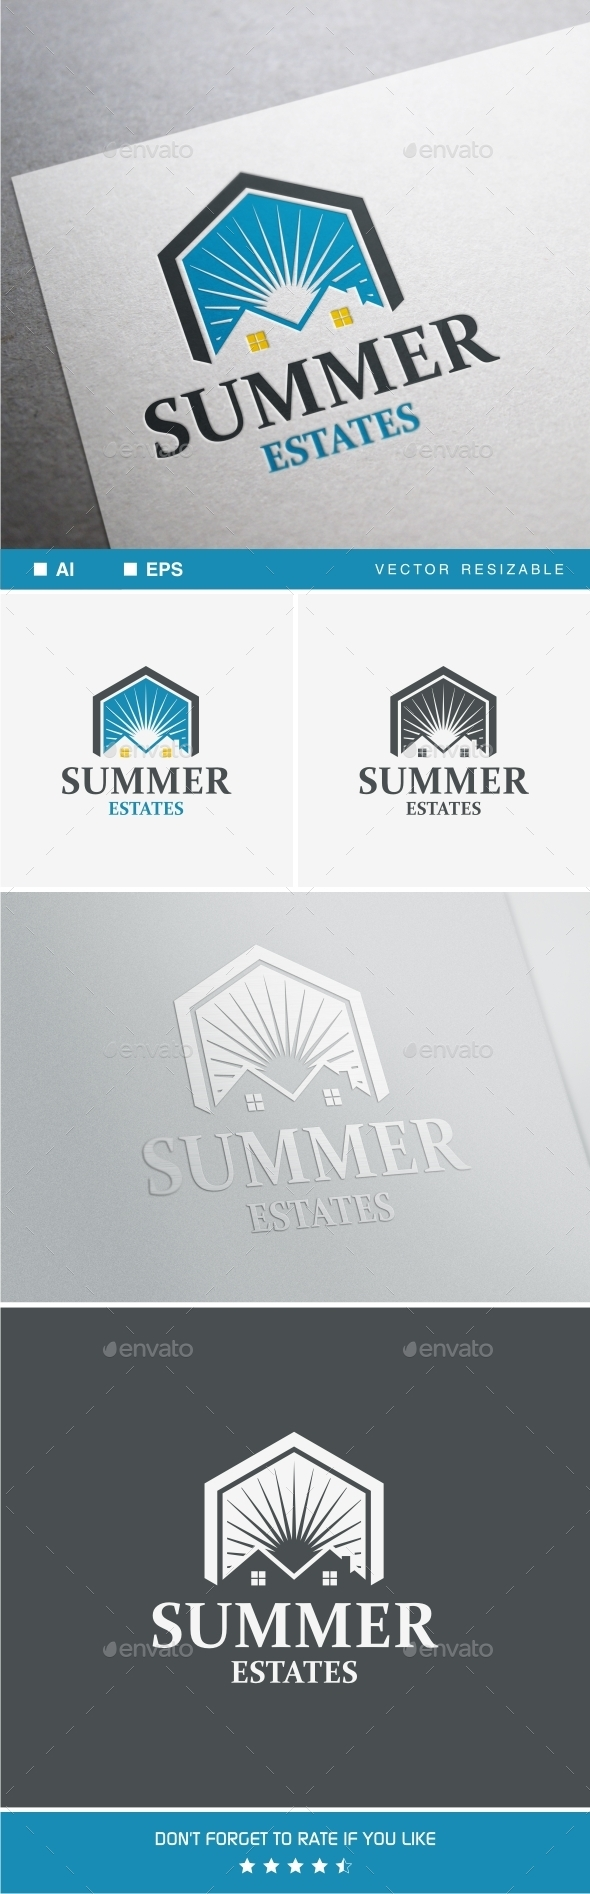 GraphicRiver Summer Estates Logo 9975714